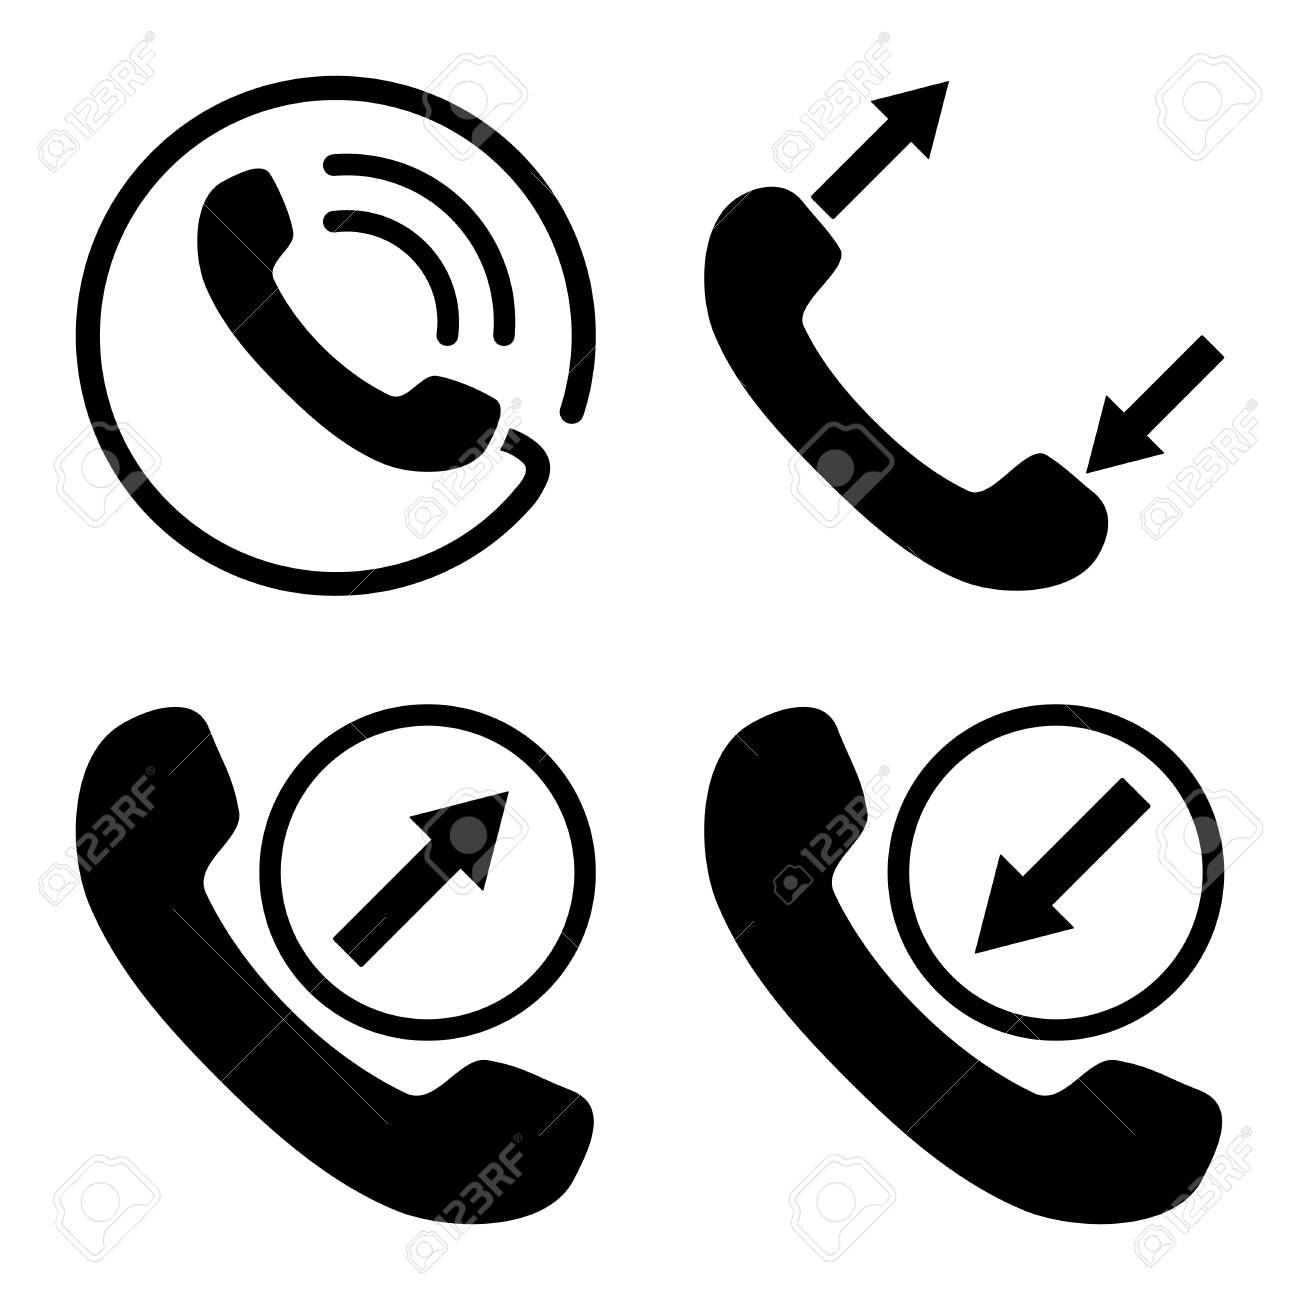 Phone Call Vector Icons Style Is Black Flat Symbols On A White